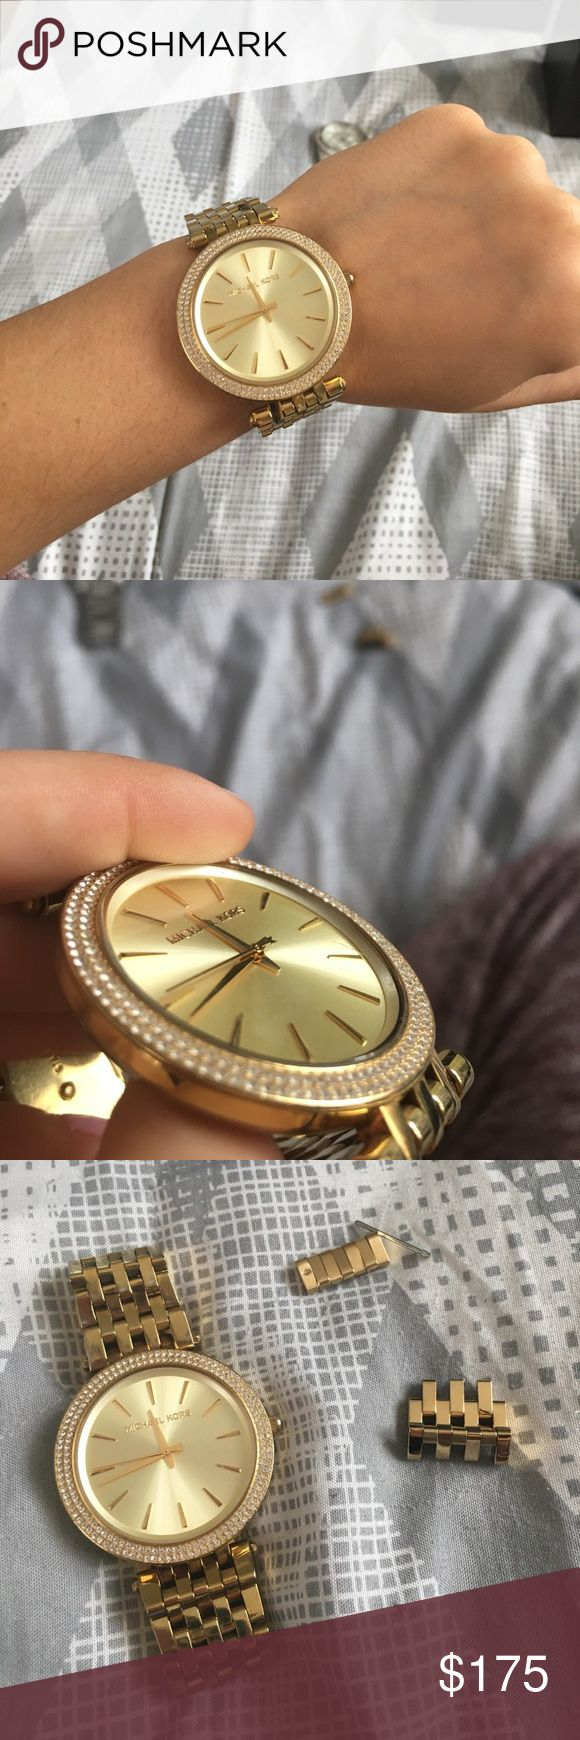 Michael Kors Darci Gold Tone Watch Style MK 3191. Needs a new battery. 1 scratch on the face and normal wear and tear on the band but in great condition still. Comes with extra links and box. Michael Kors Accessories Watches